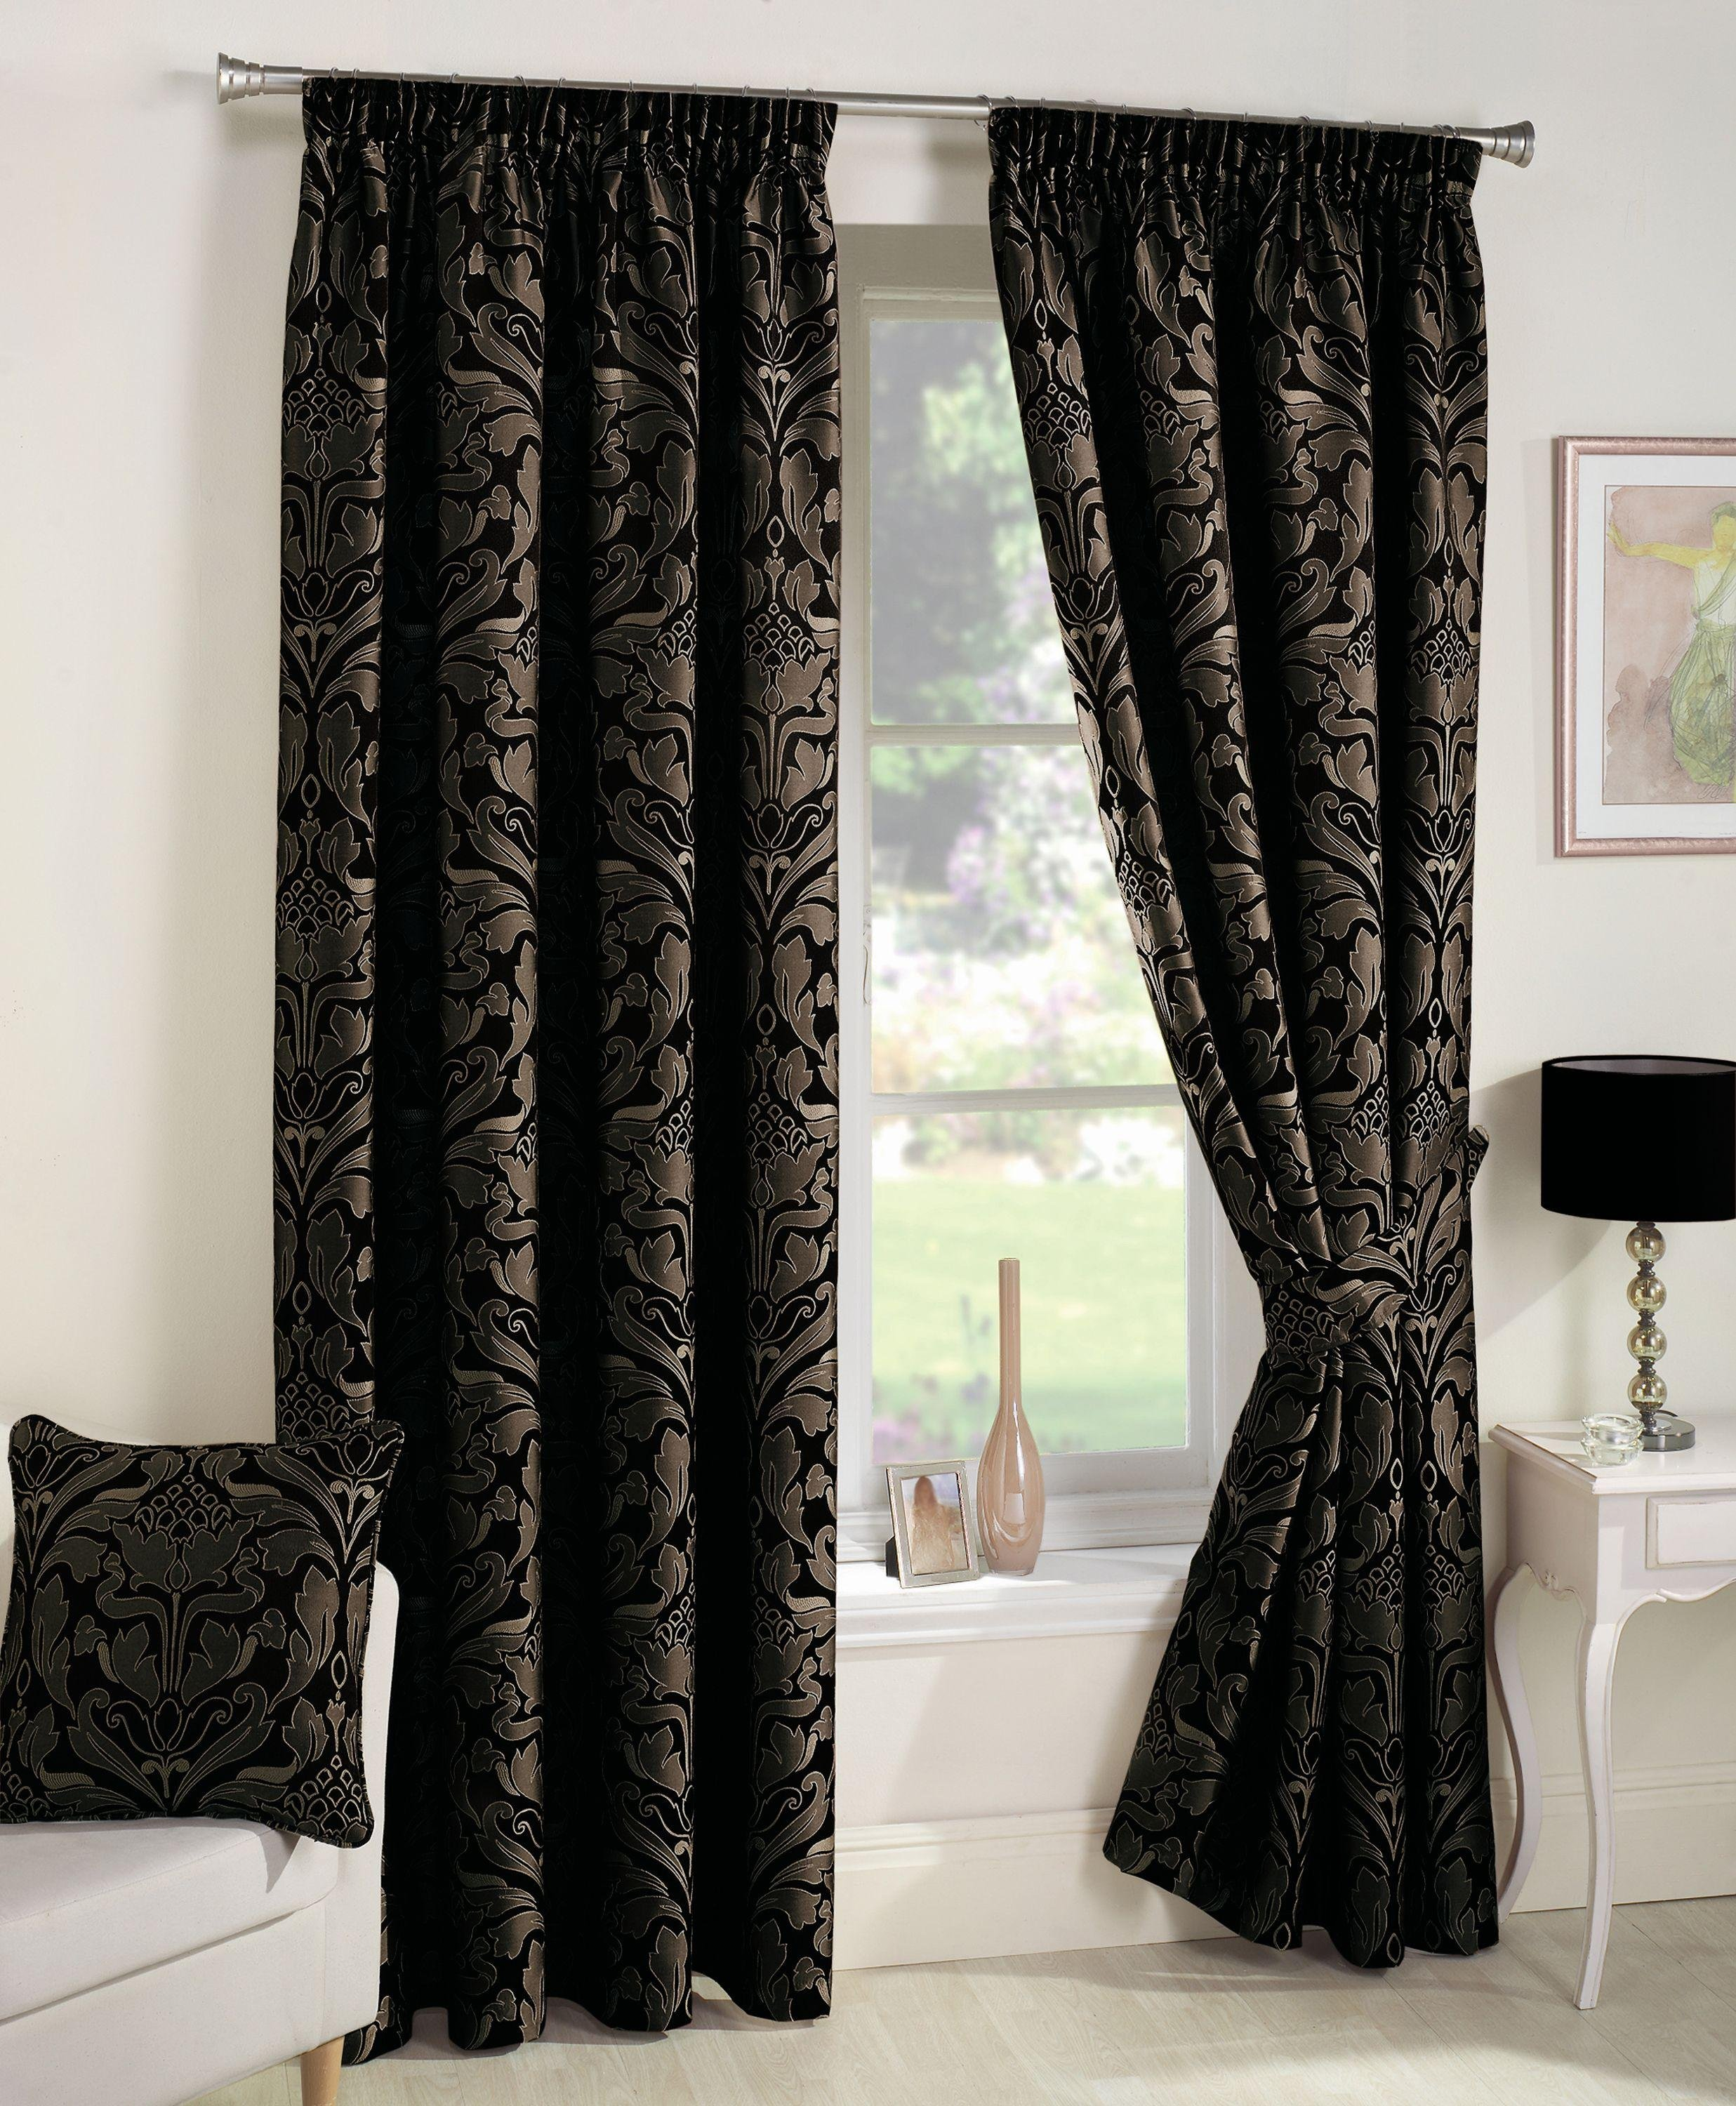 curtina-crompton-lined-curtains-168x229cm-black